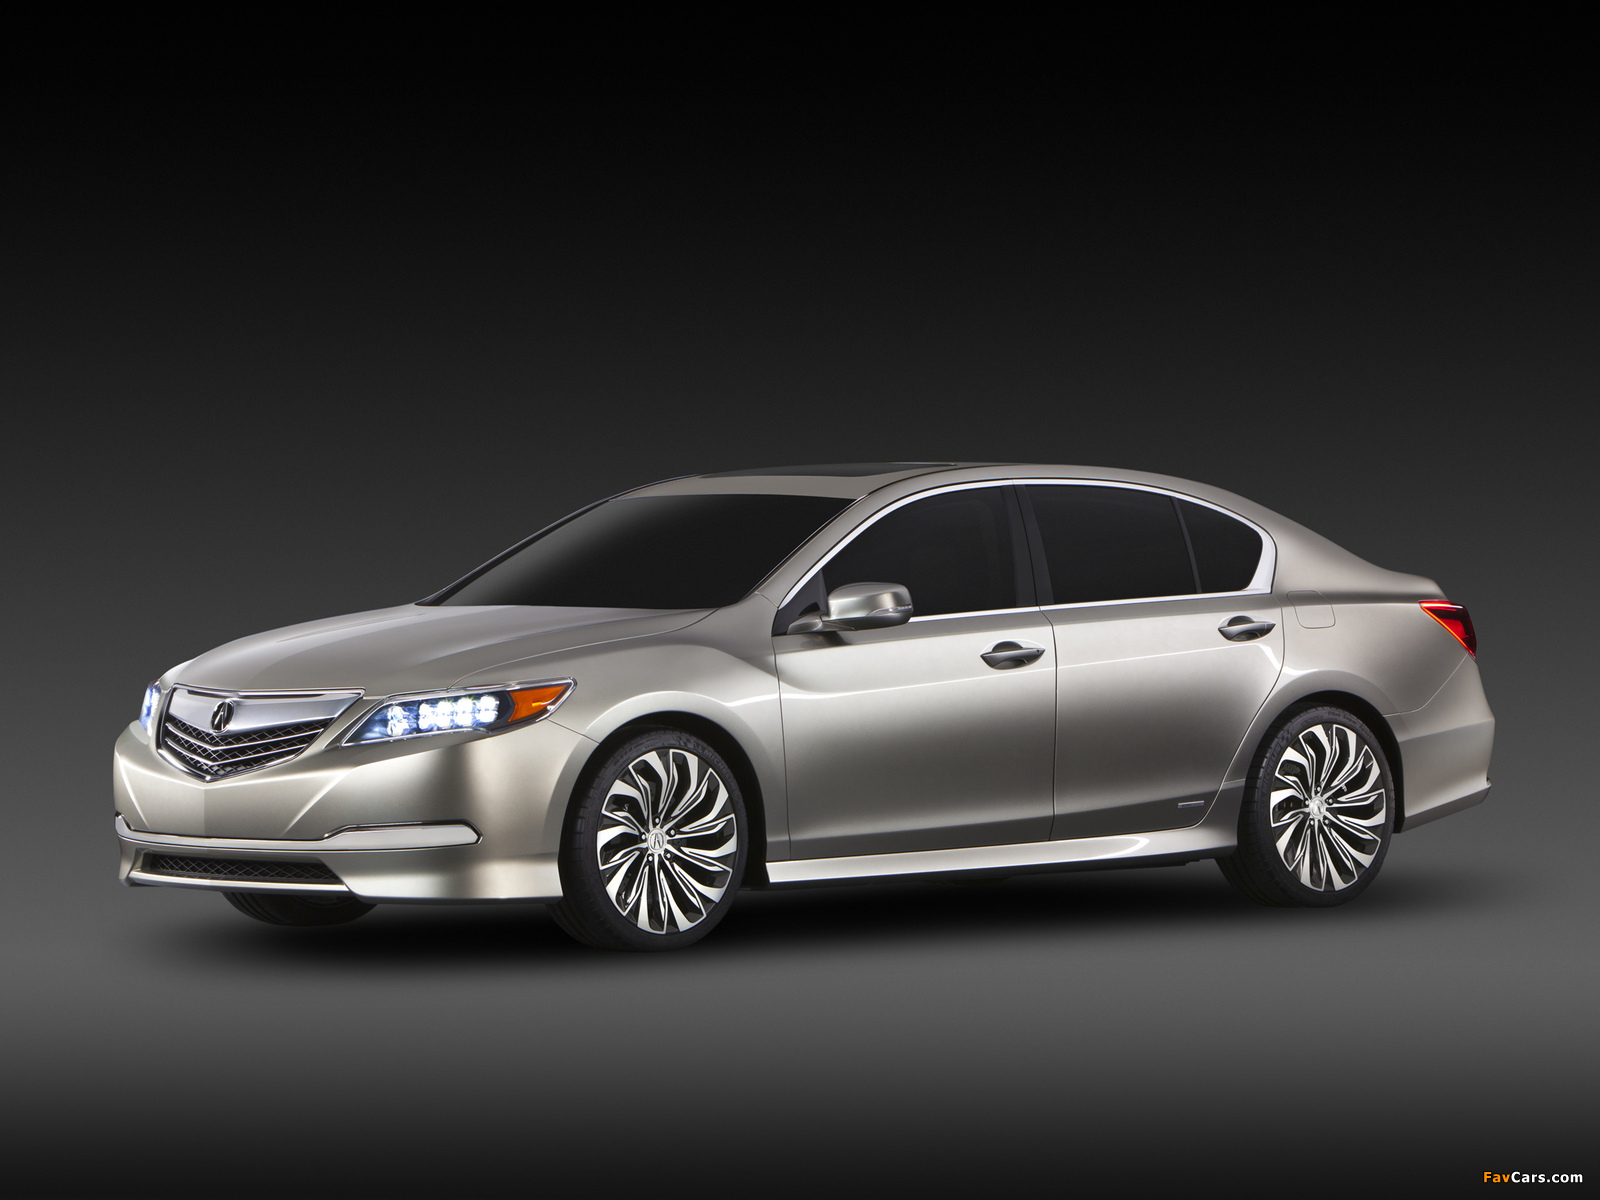 Acura RLX Concept (2012) wallpapers (1600 x 1200)